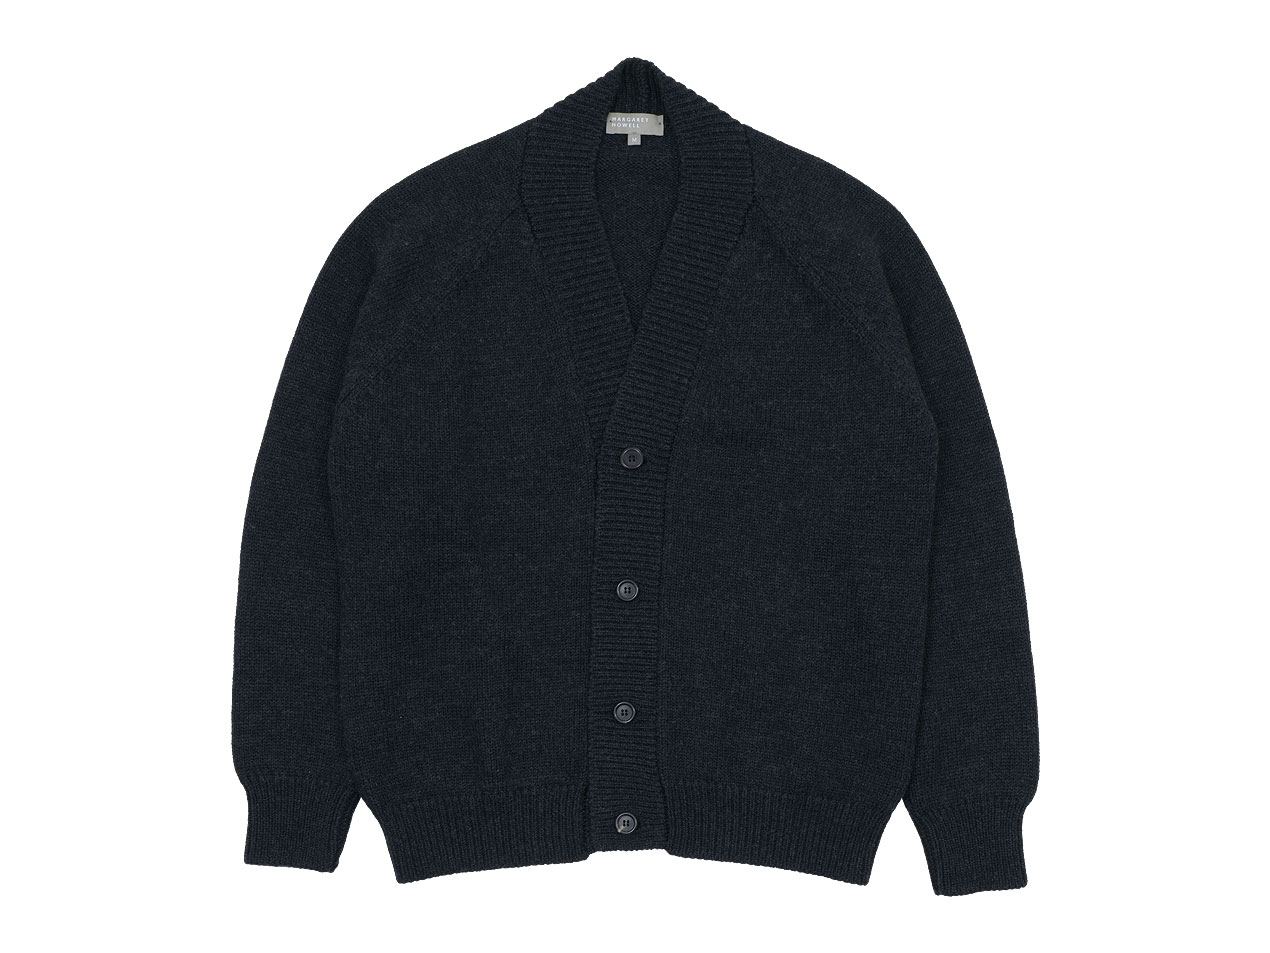 MARGARET HOWELL FINE MERINO WOOL KNIT CARDIGAN 〔メンズ〕